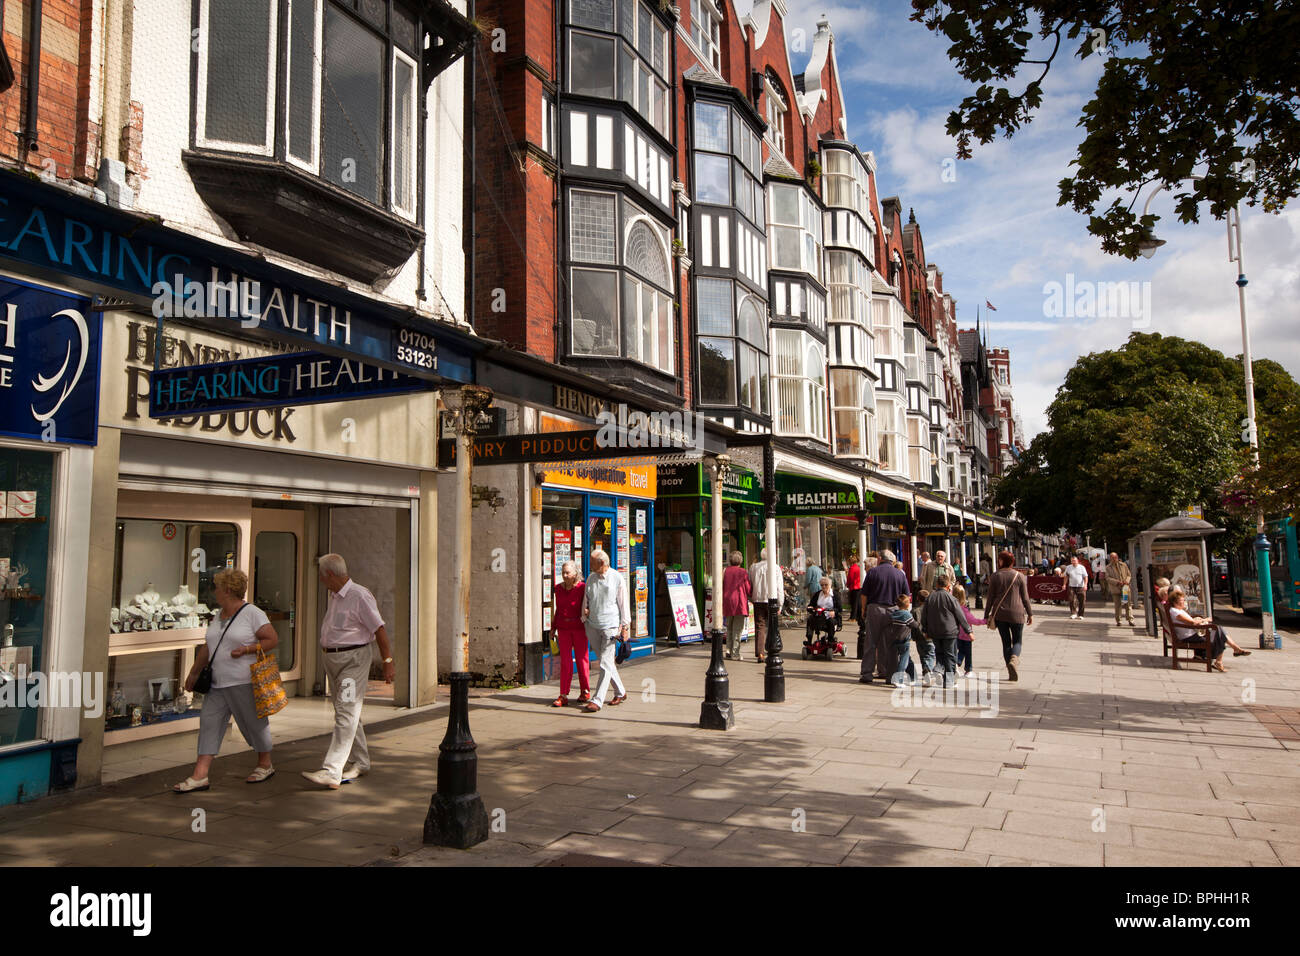 UK, England, Merseyside, Southport, Lord Street, shoppers on broad pavement in sunshine Stock Photo